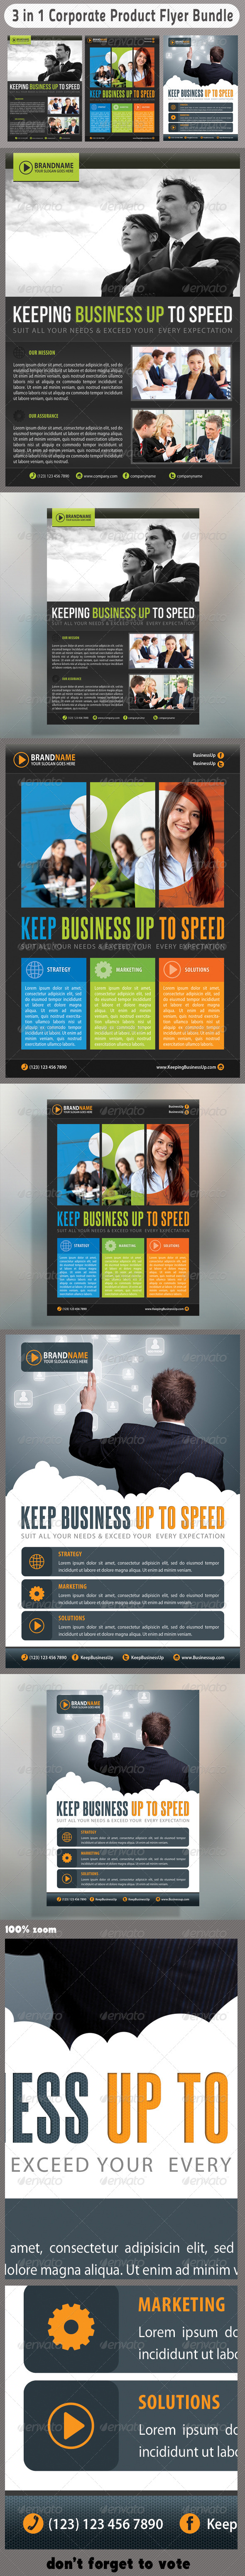 GraphicRiver 3 in 1 Corporate Flyers Bundle 05 6669396